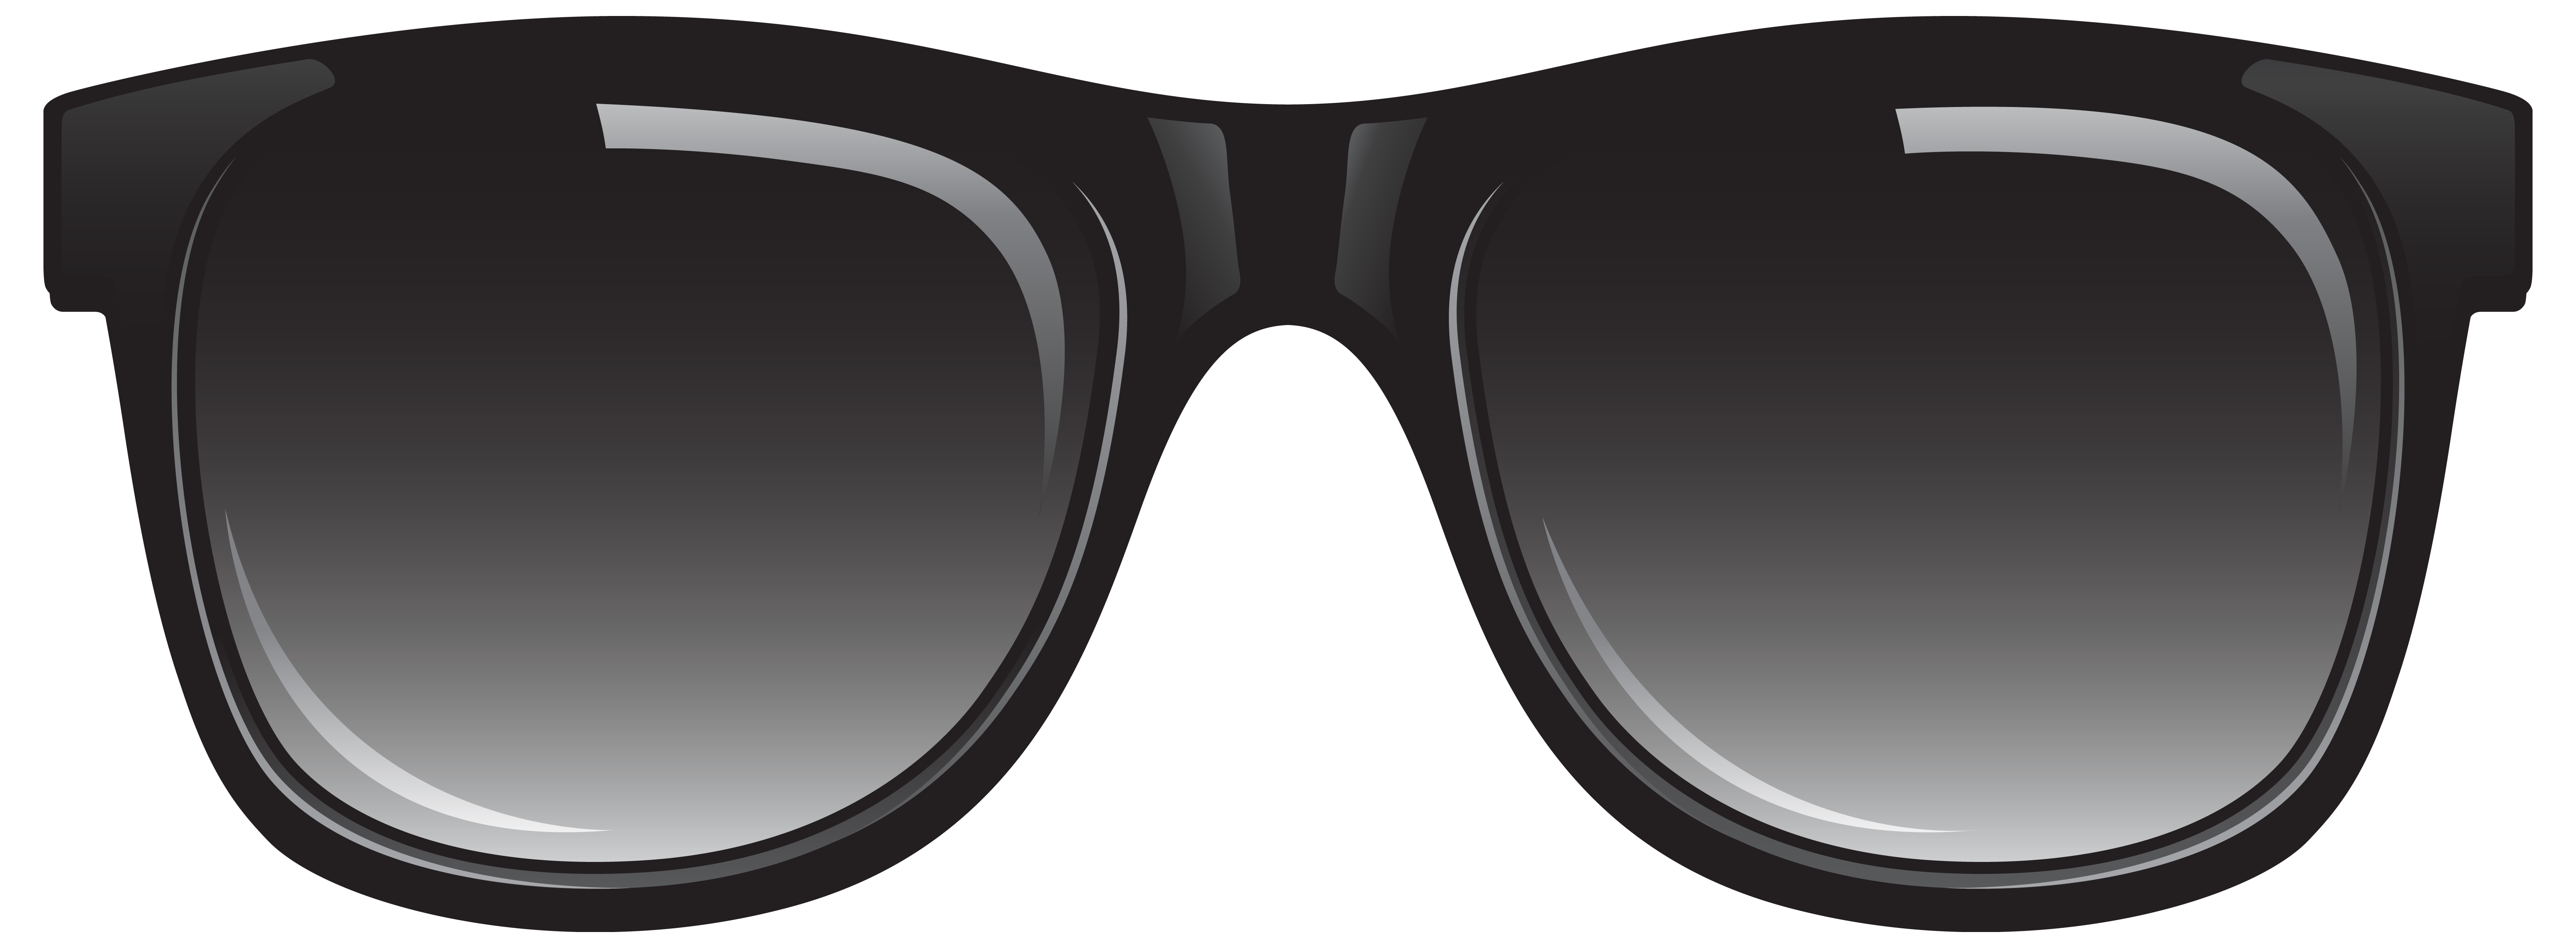 Goggles vector black and white. Sunglasses png clipart image